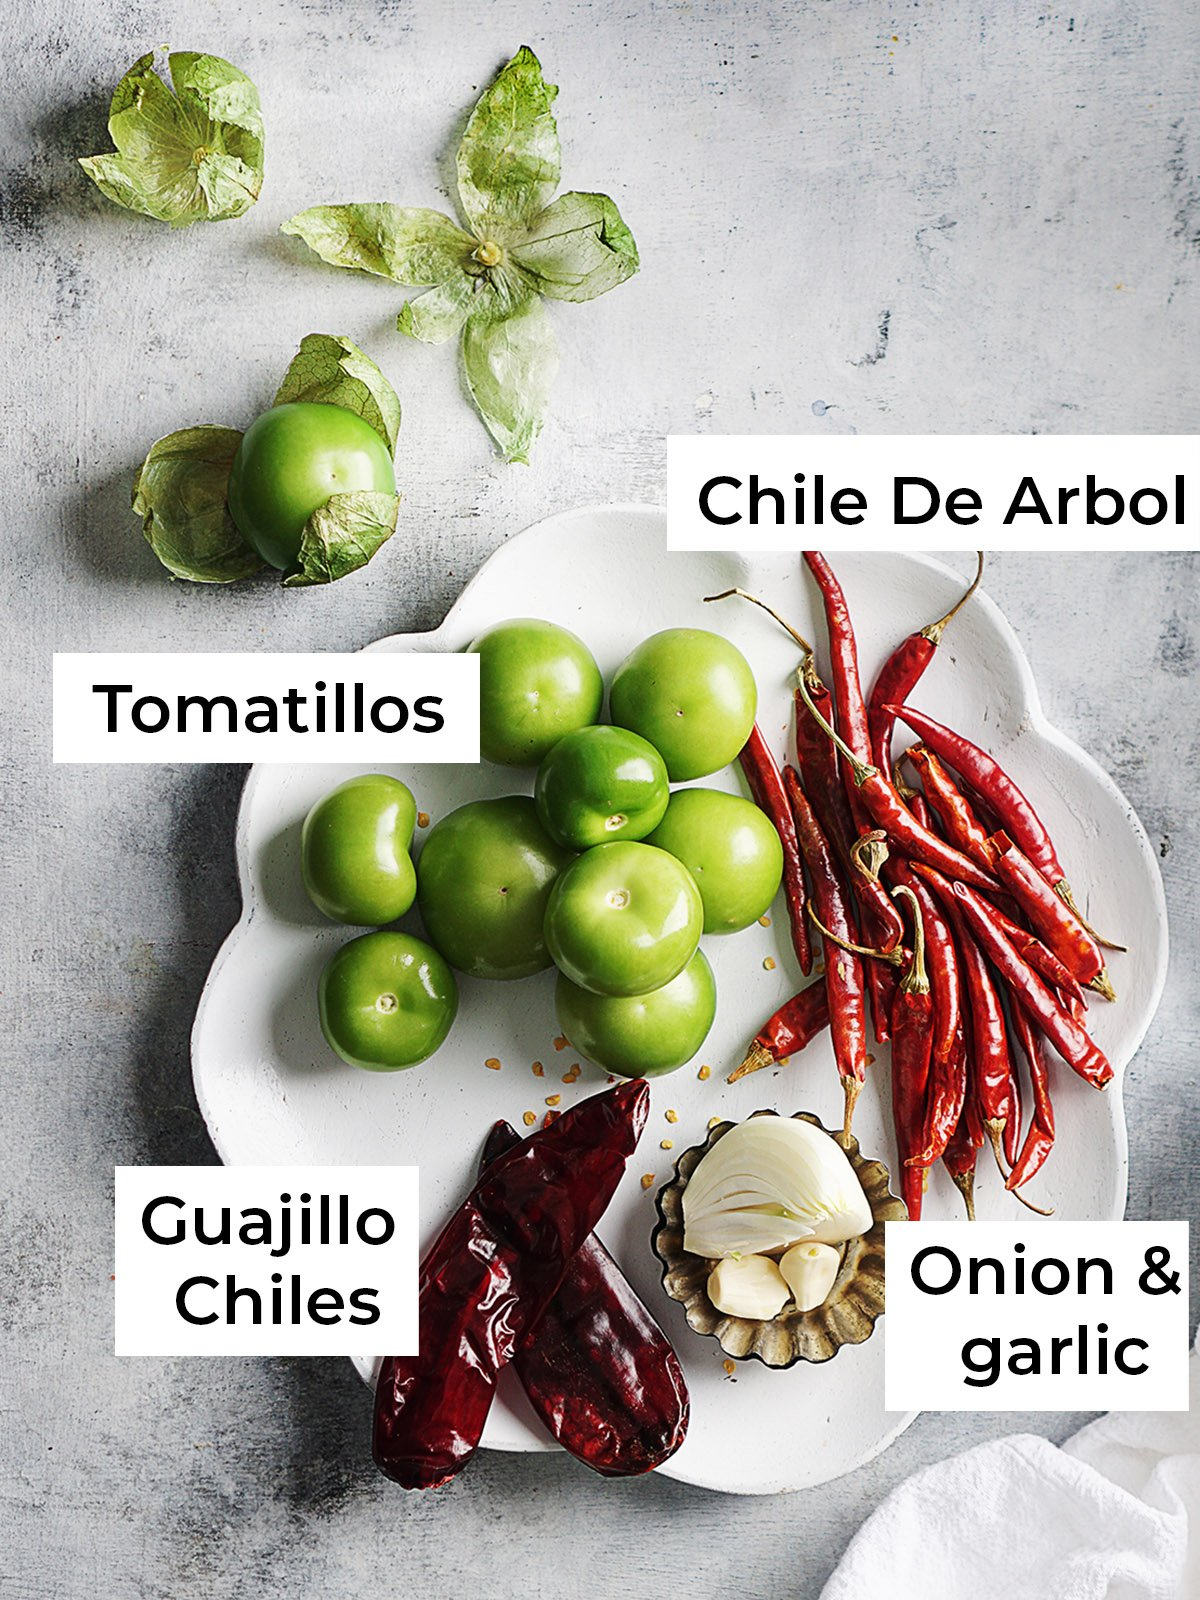 Ingredients for salsa on a white plate: Arbol chiles, onions, garlic, serrano peppers, an 2 guajillo peppers